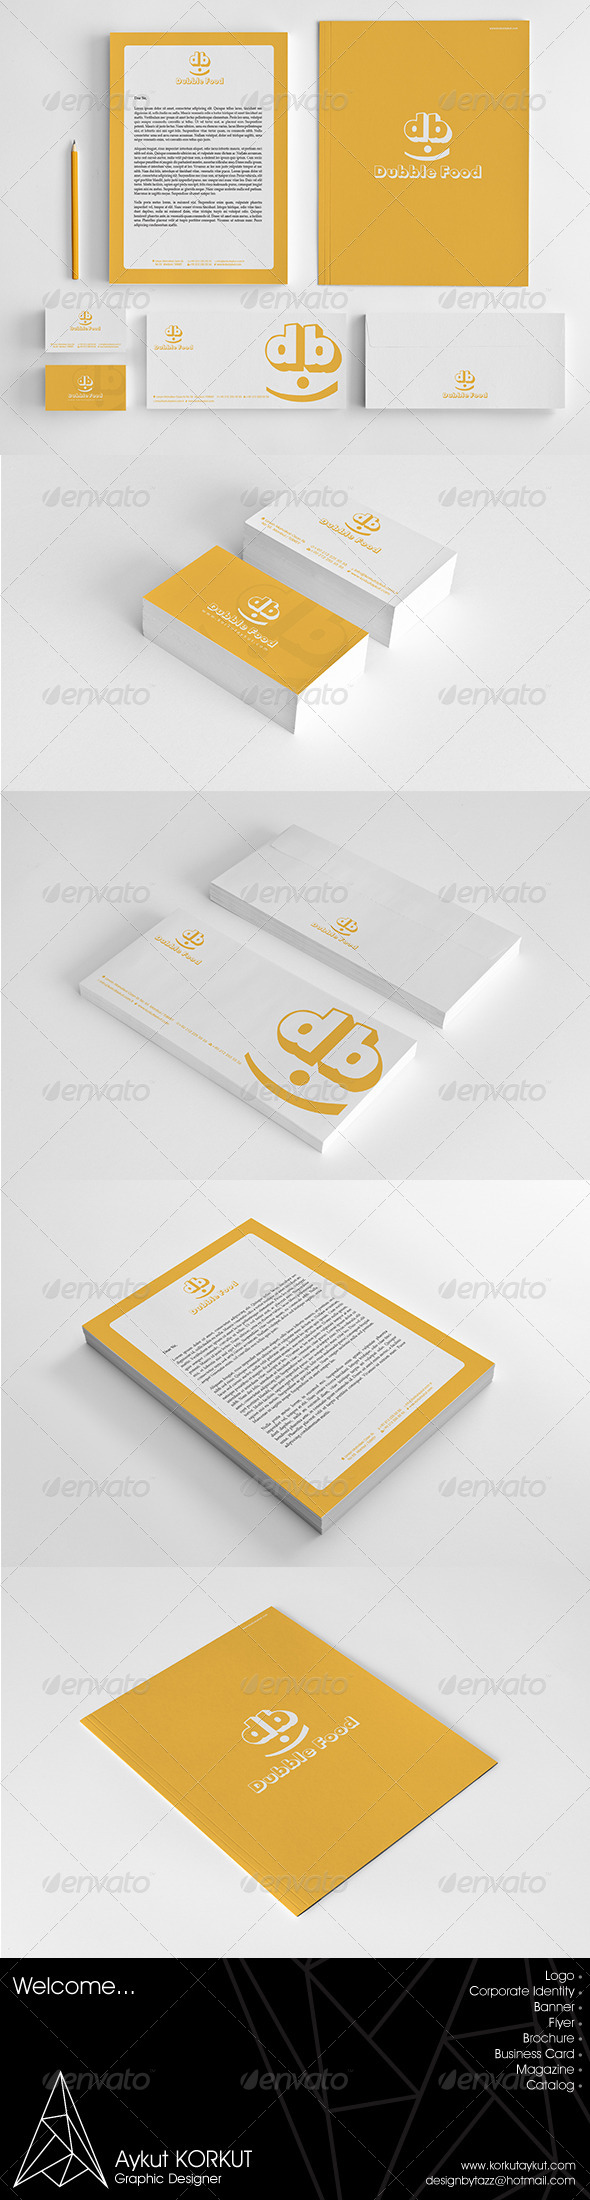 Dubble Food Corporate Identity Package